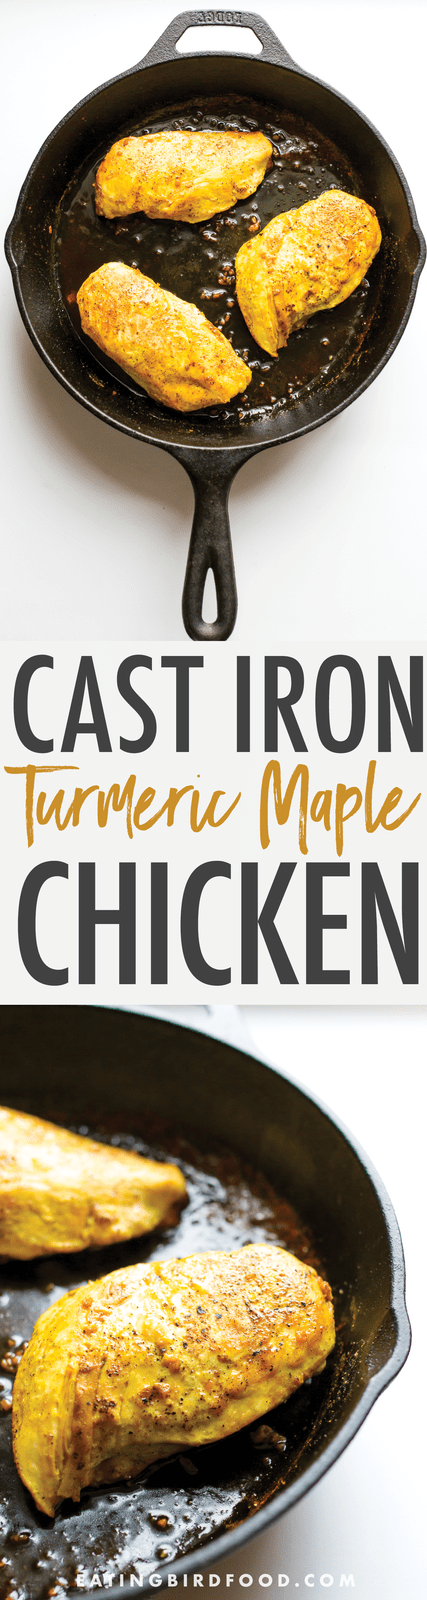 Perfectly sweet and savory, this maple turmeric chicken is a delicious way to give your body an extra anti-inflammatory boost. Great for meal prep!